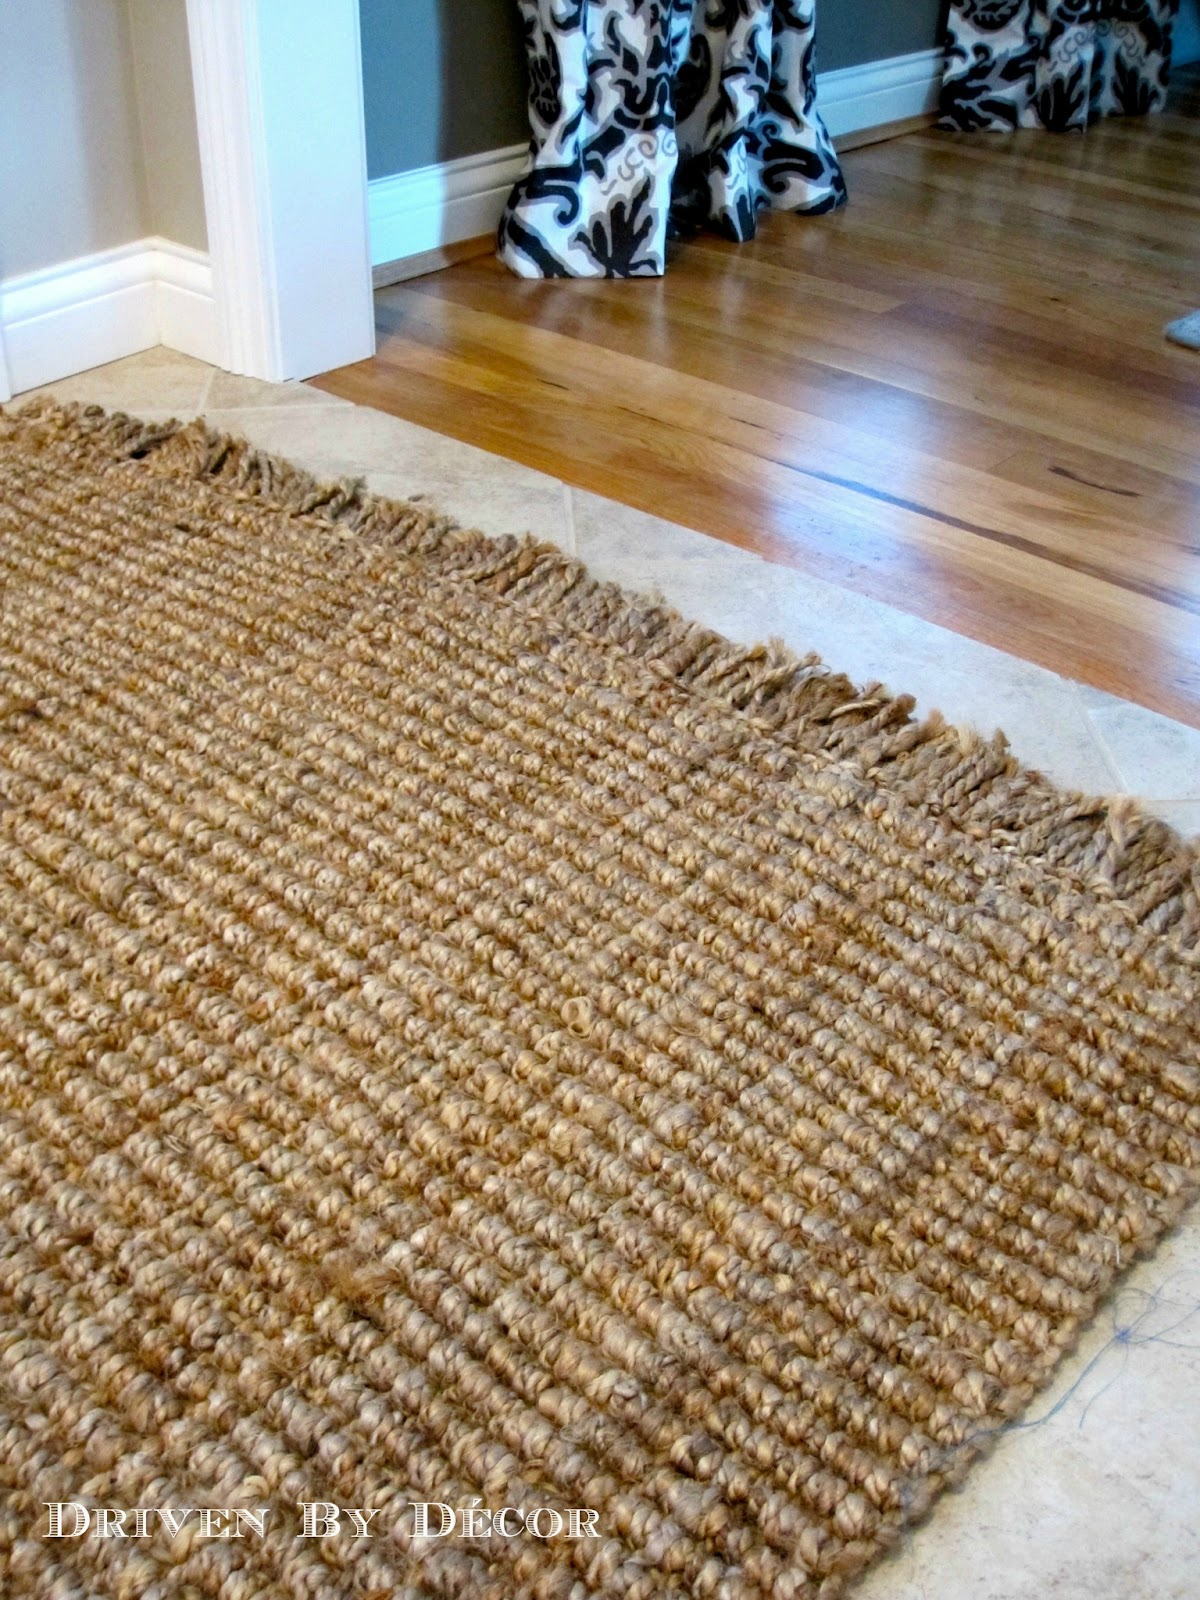 A Great Online Source For Inexpensive Area Rugs Driven